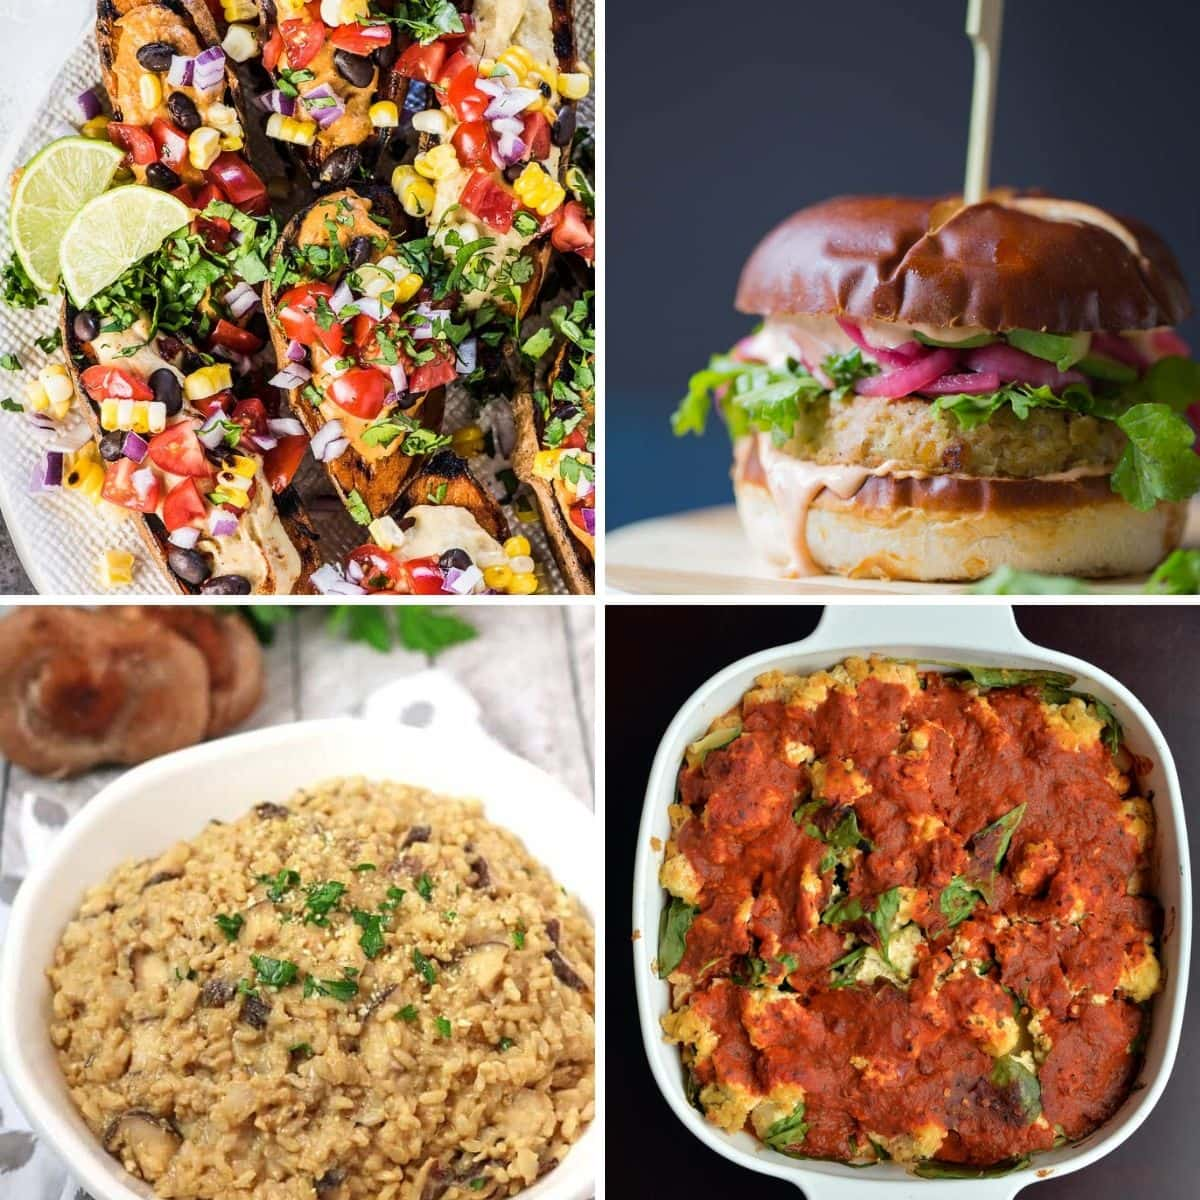 4 images 4 foods: Grilled Southwest Stuffed Sweet Potatoes with BBQ Hummus, Easy Hummus Chickpea Veggie Burgers, Mushroom Hummus Risotto, Vegan Hummus Lasagna